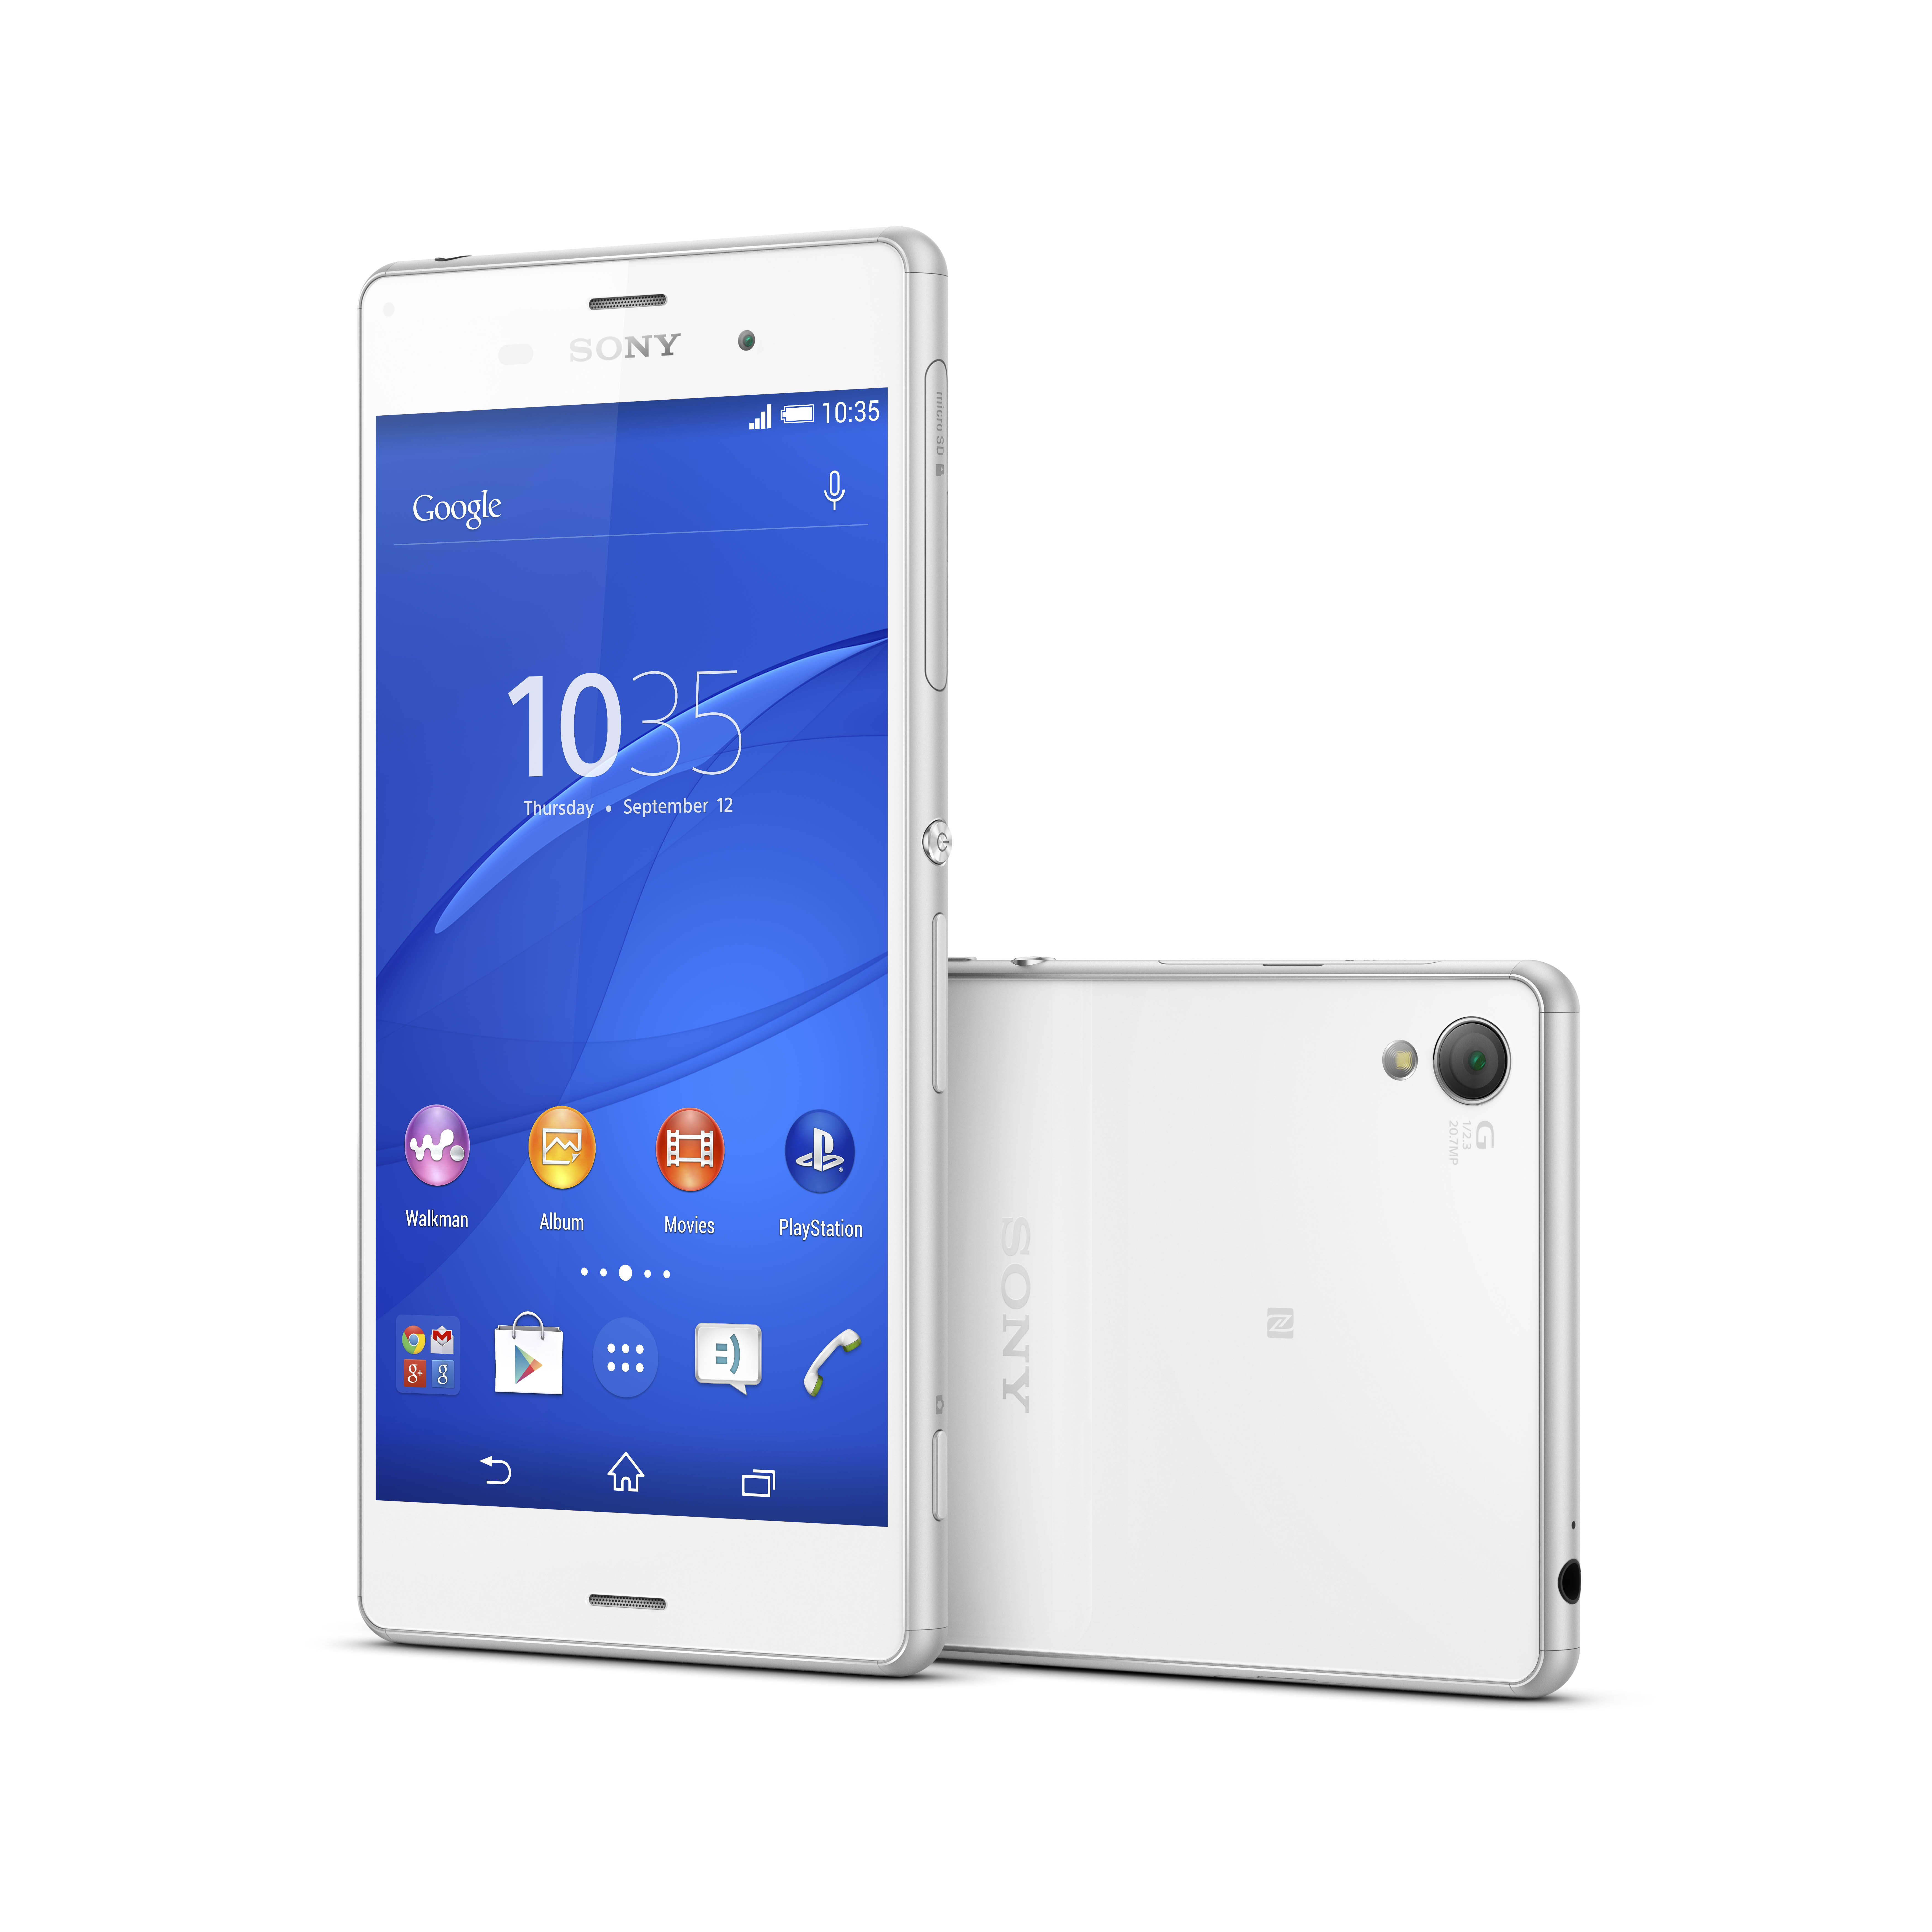 Sony xperia z3 officially announced try watching this video on youtube or enable javascript if it is disabled in your browser localoffer ifa 2014 sony sony xperia z3 ccuart Gallery